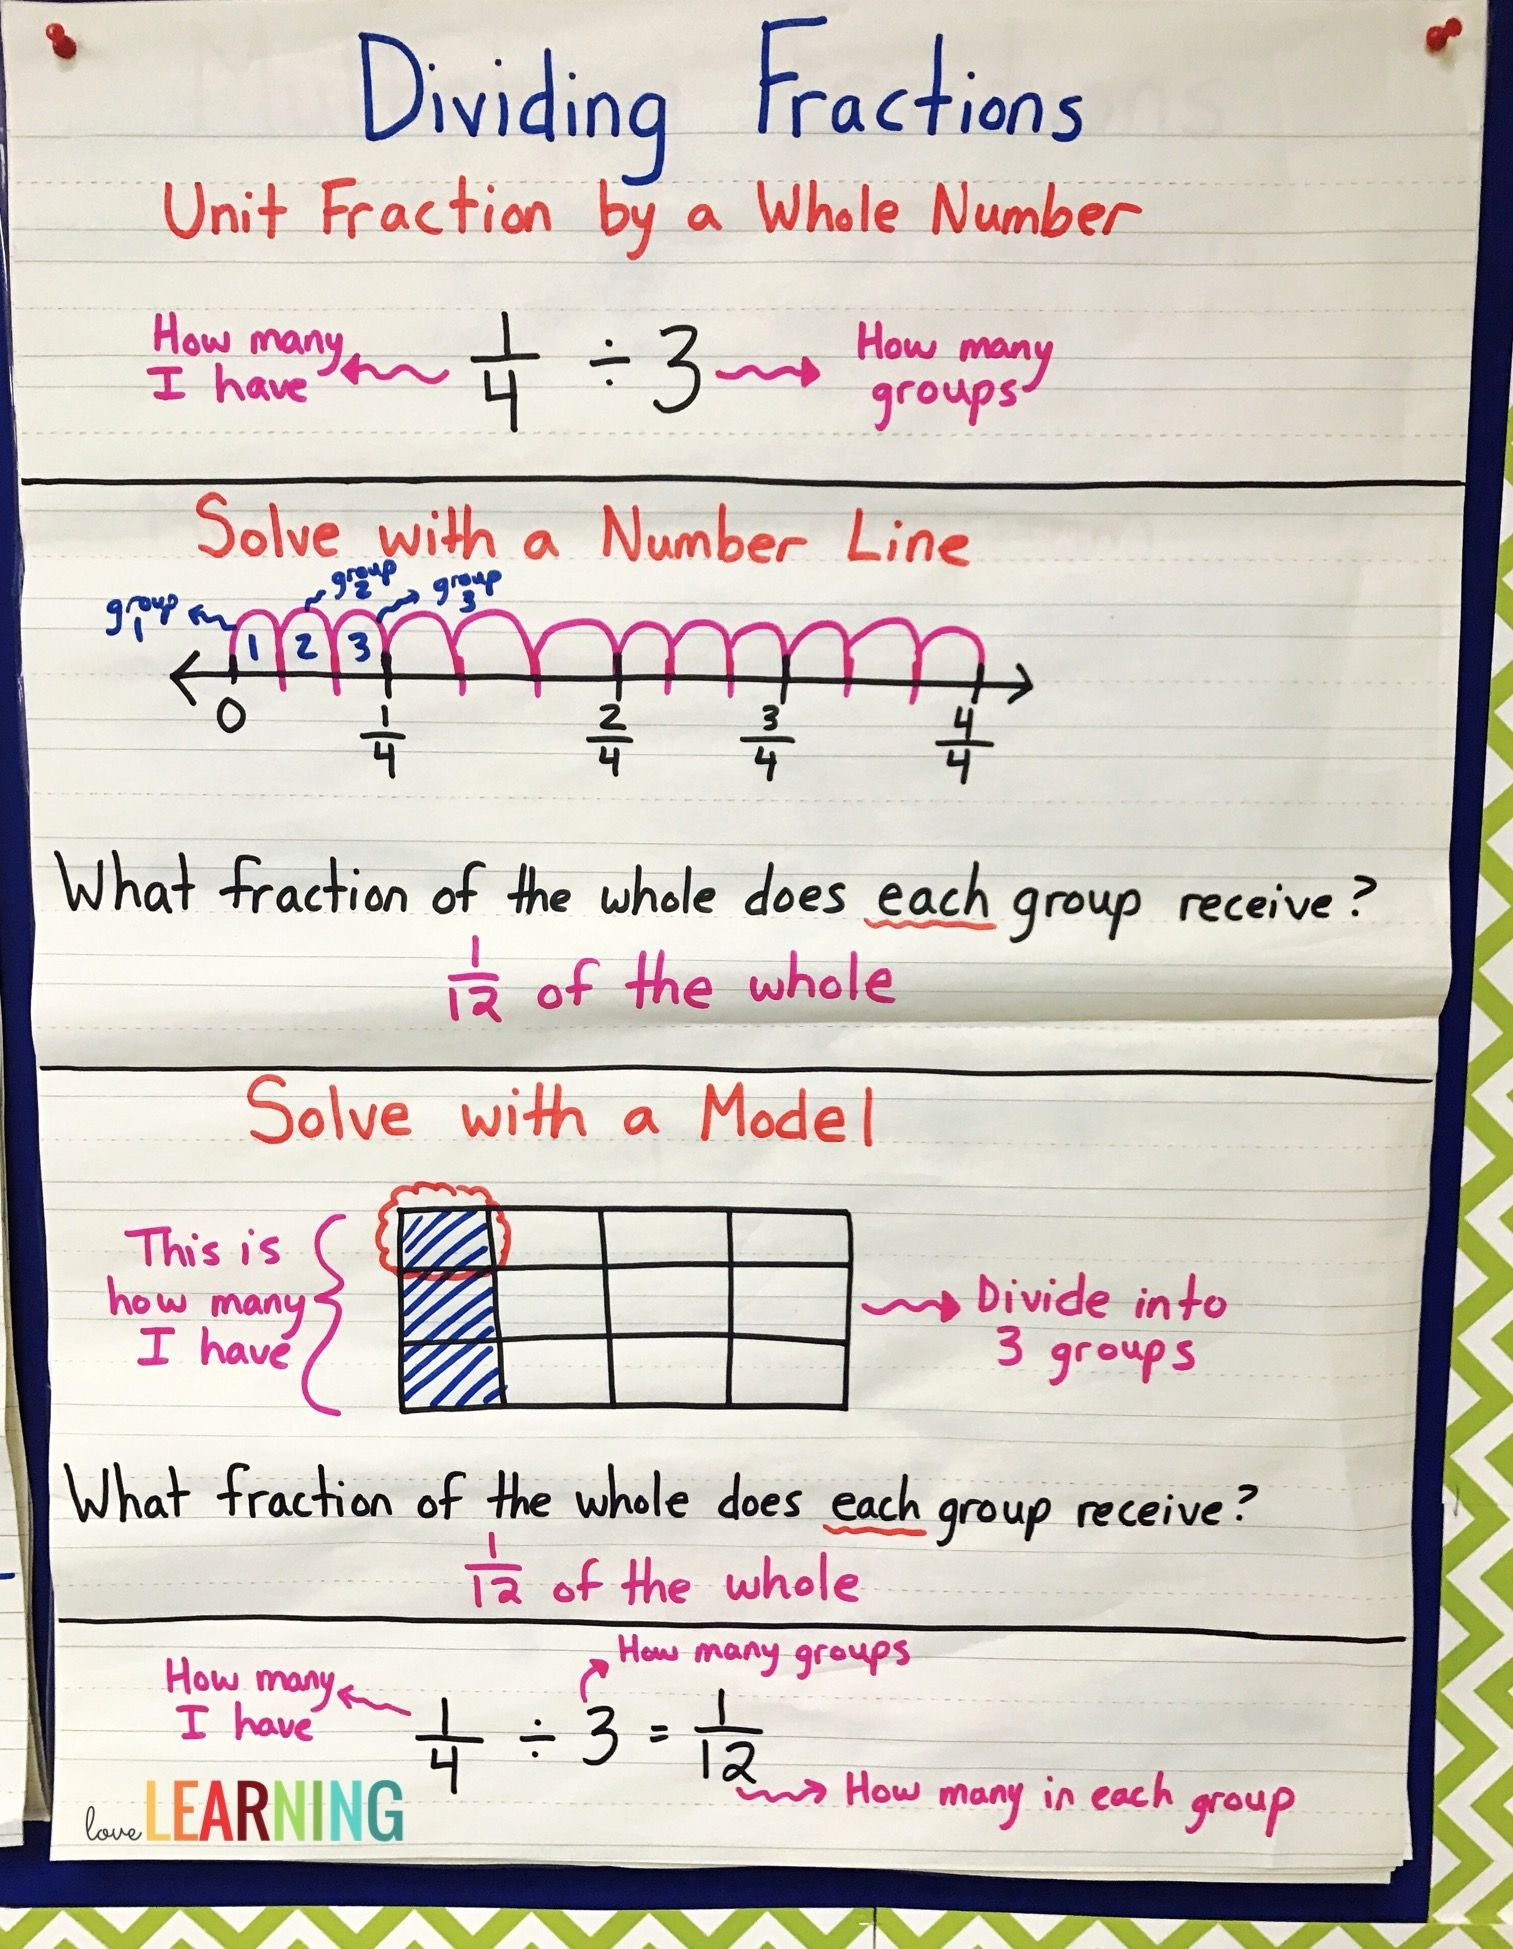 Dividing Fractions Using Models Worksheet Best Of Divide Unit Fractions and whole Numbers